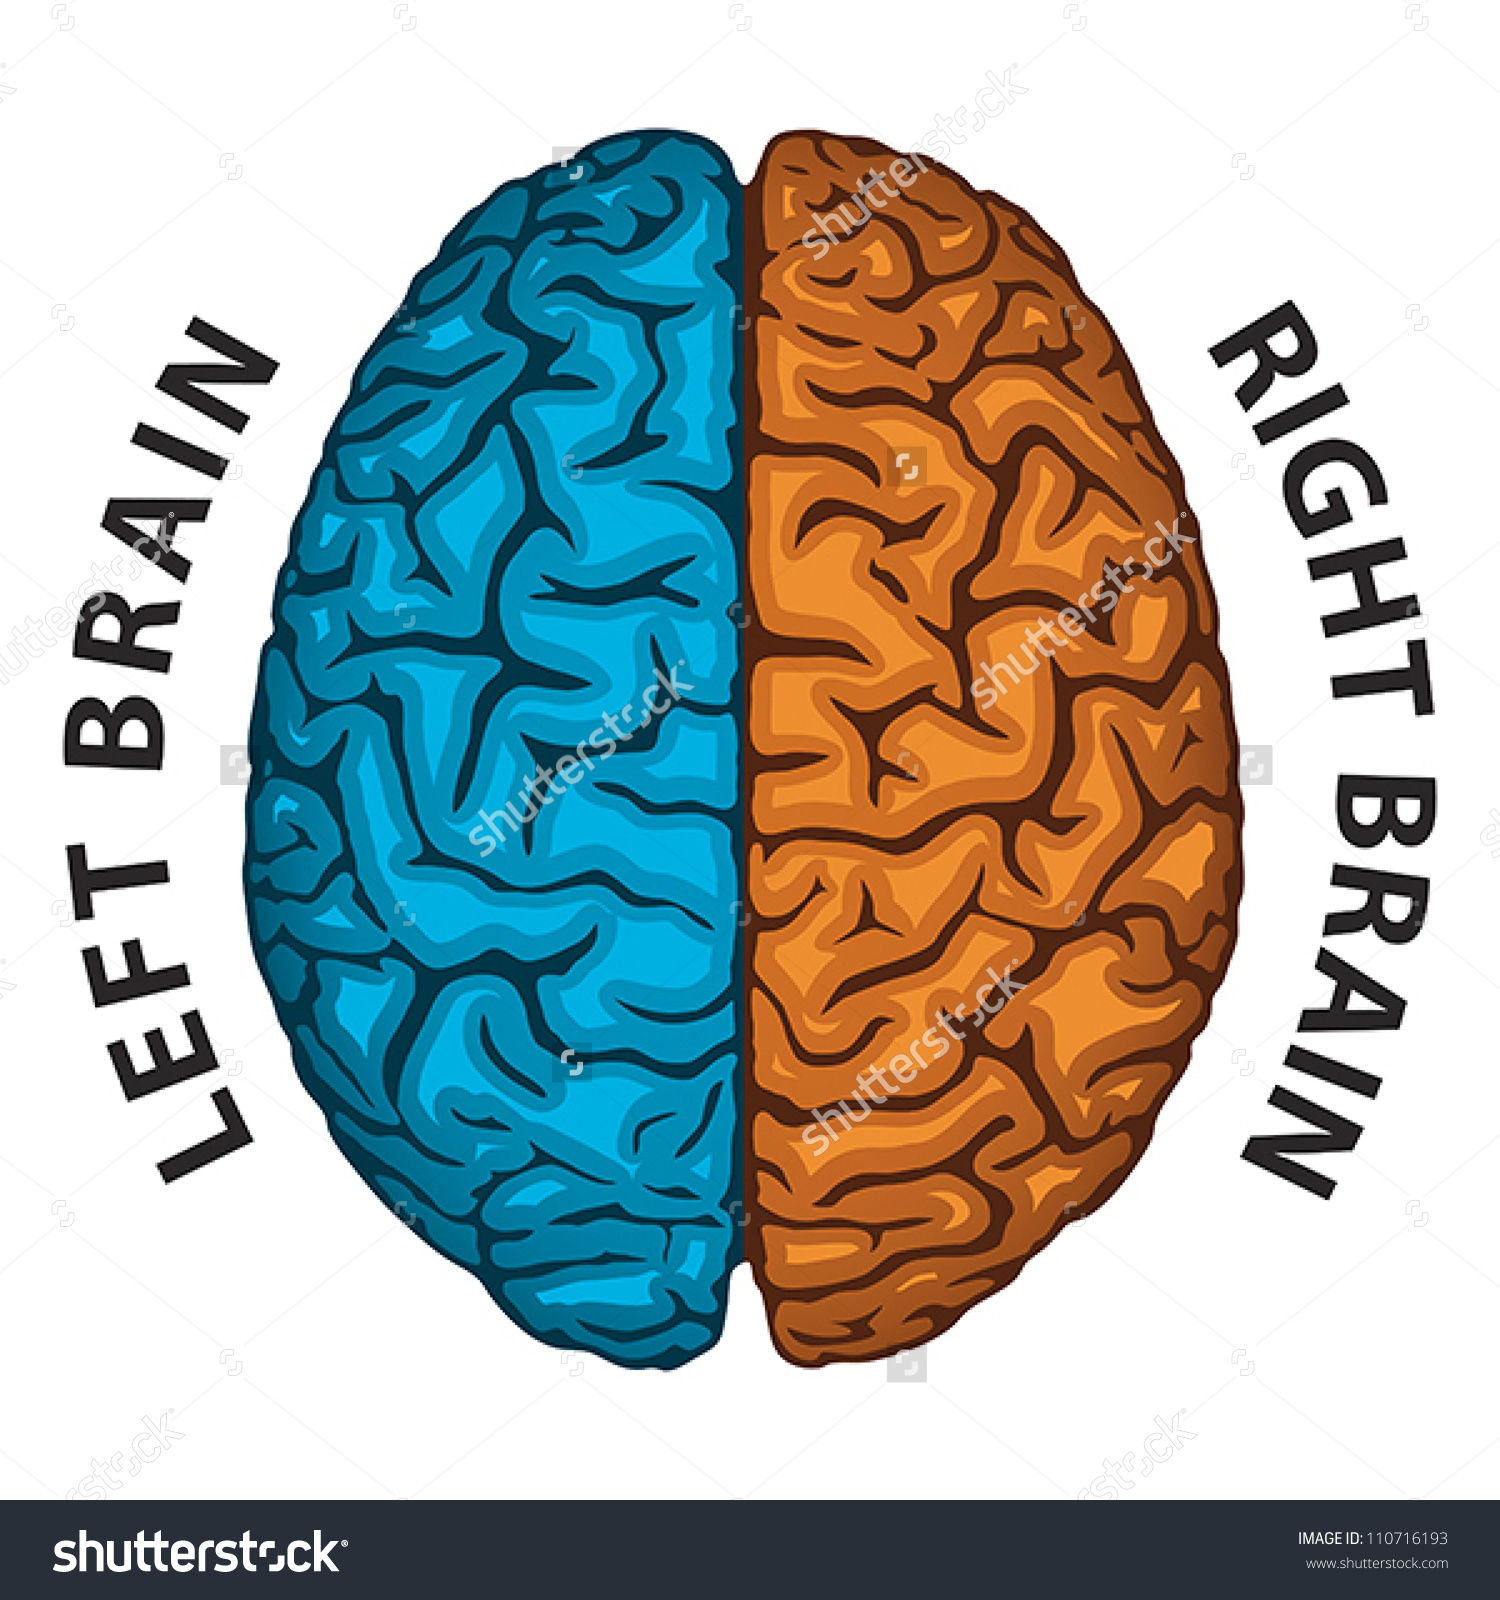 Left Brain Right Brain Human Brain Stock Vector 110716193.